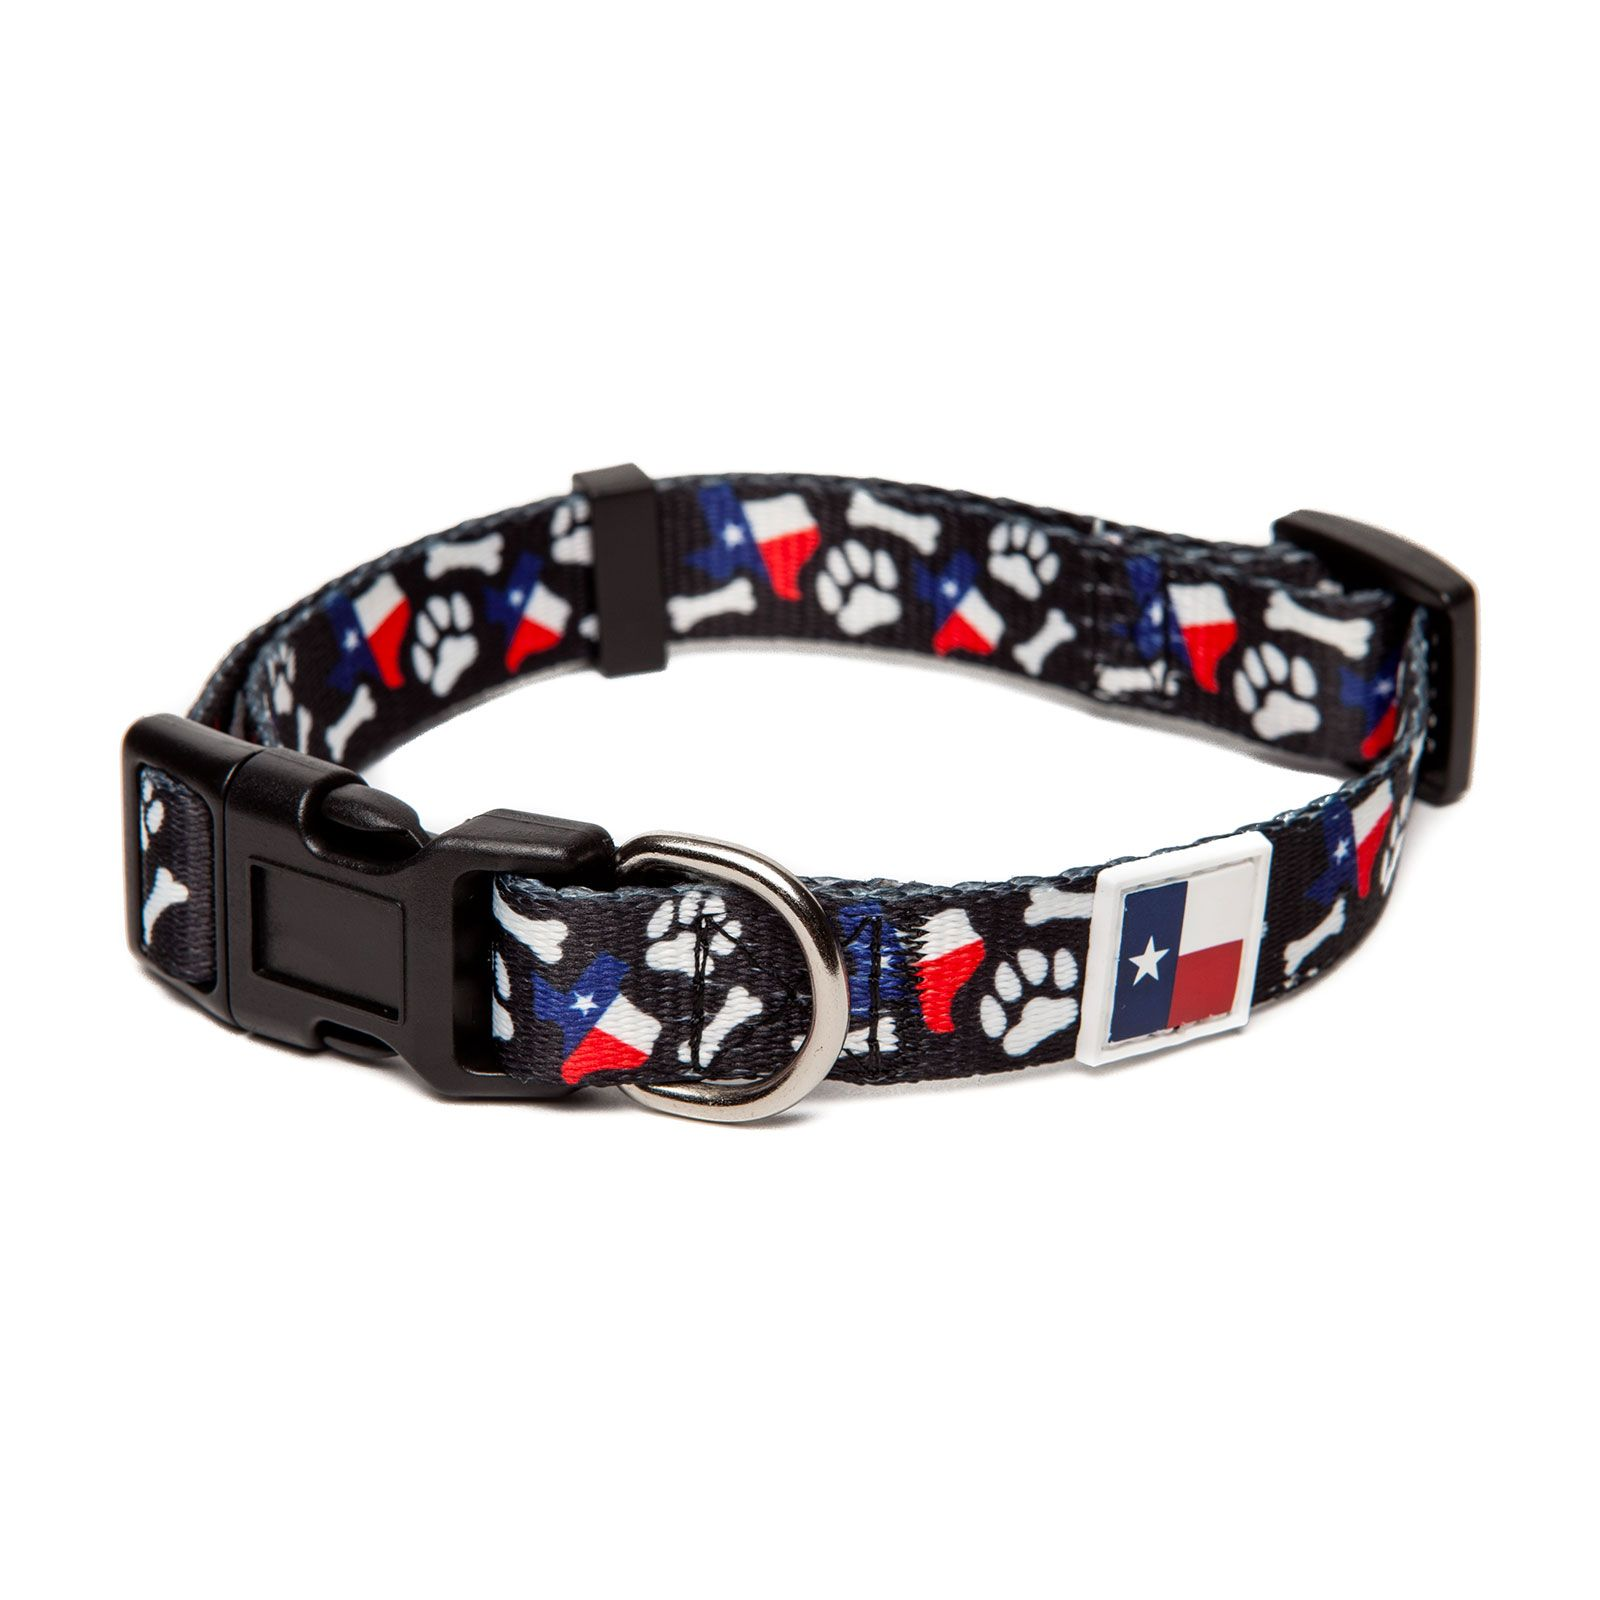 Medium Texas Dog Collar